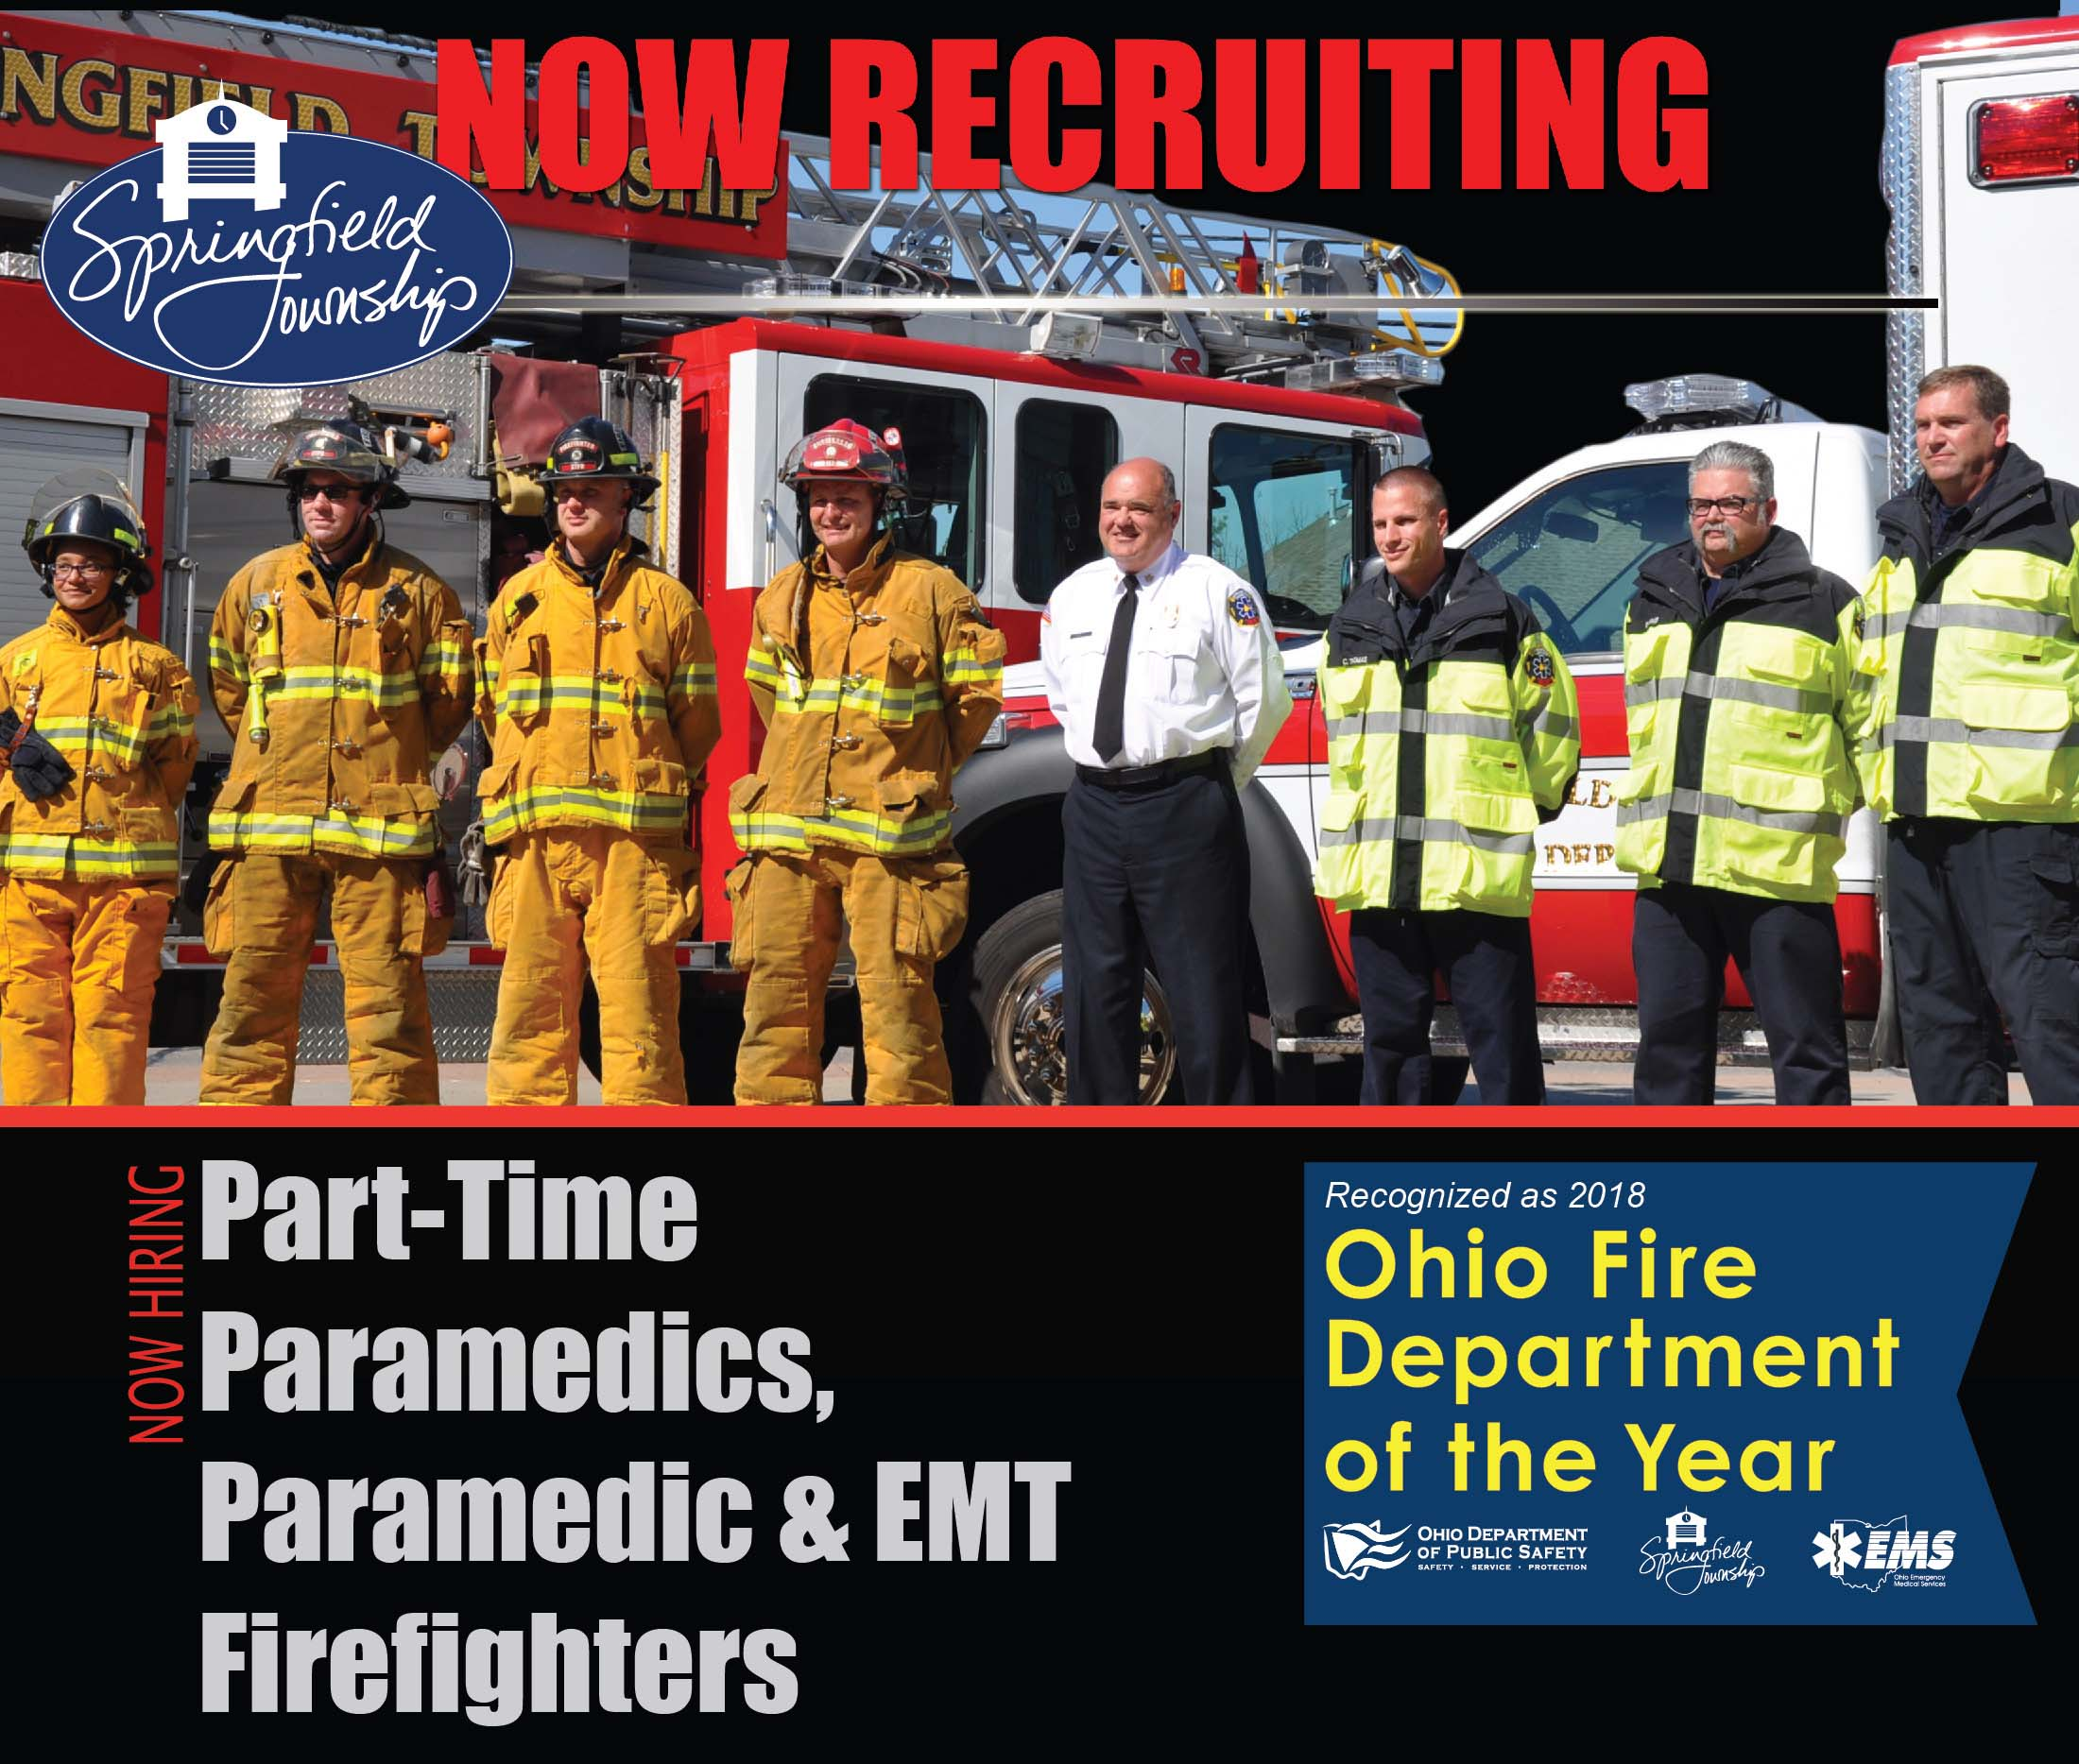 Fire recruitment image for social-2020-01